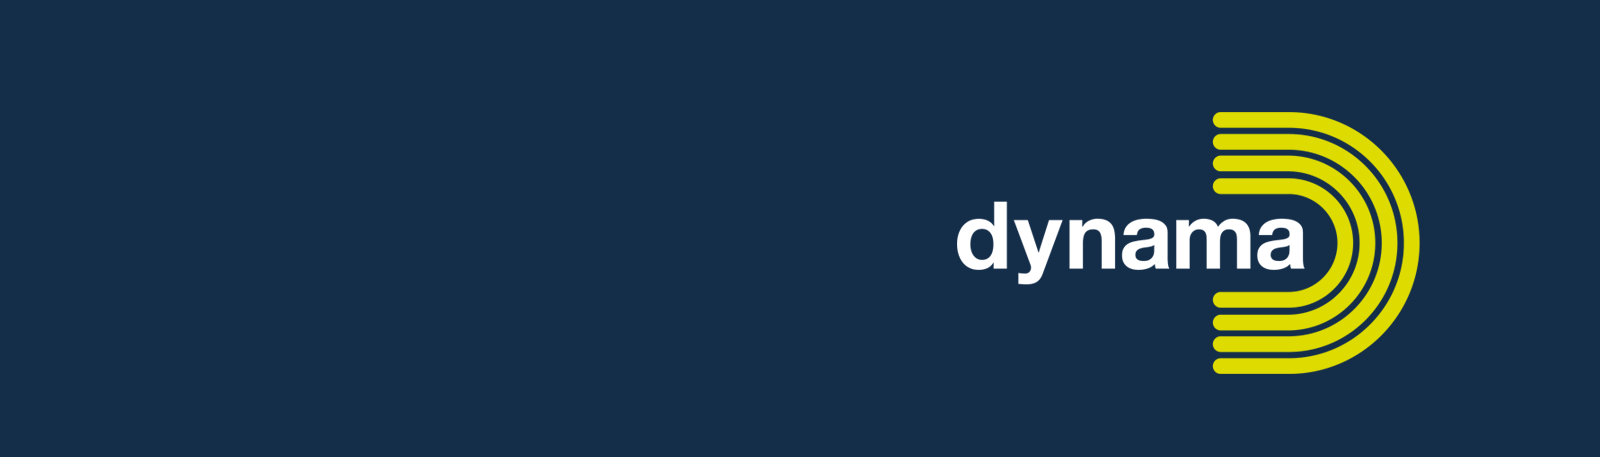 Dynama opens a new office in Canberra, Australia to support business growth and to offer enhanced customer services